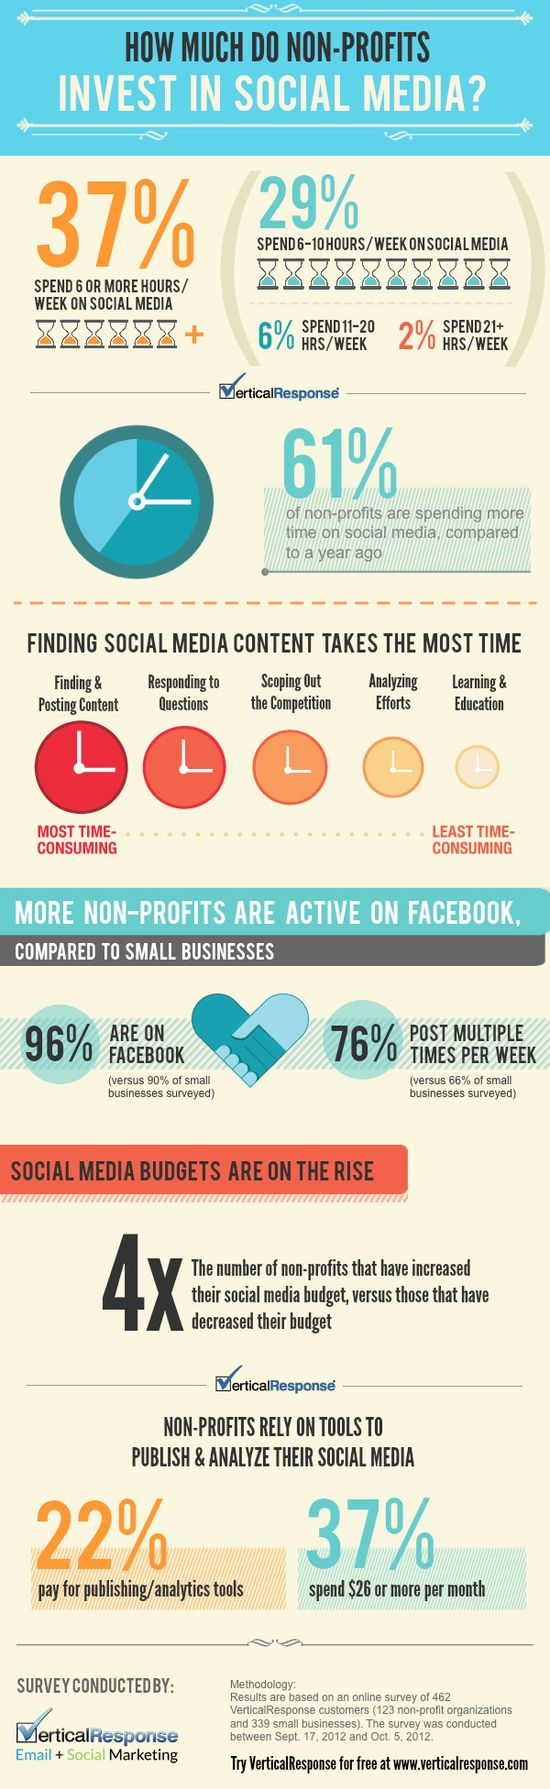 The majority of non-profits invest between 6-10 hours on social media each week.